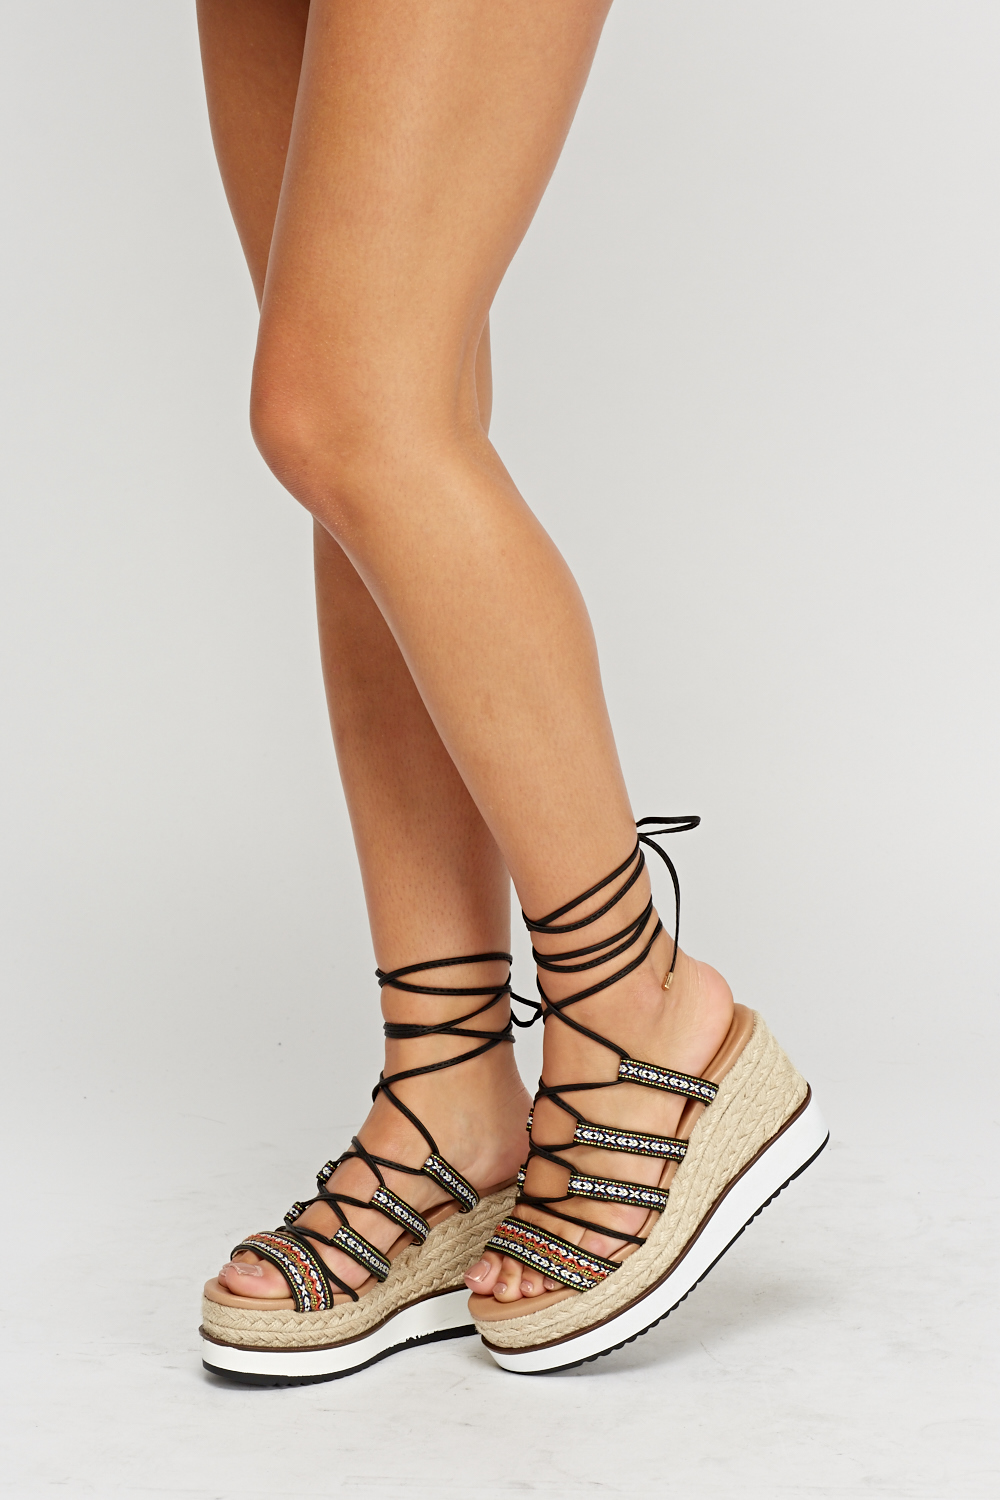 1ddc515f6f0ac Tie Up Wedge Espadrille Sandals. Click on the image to zoom